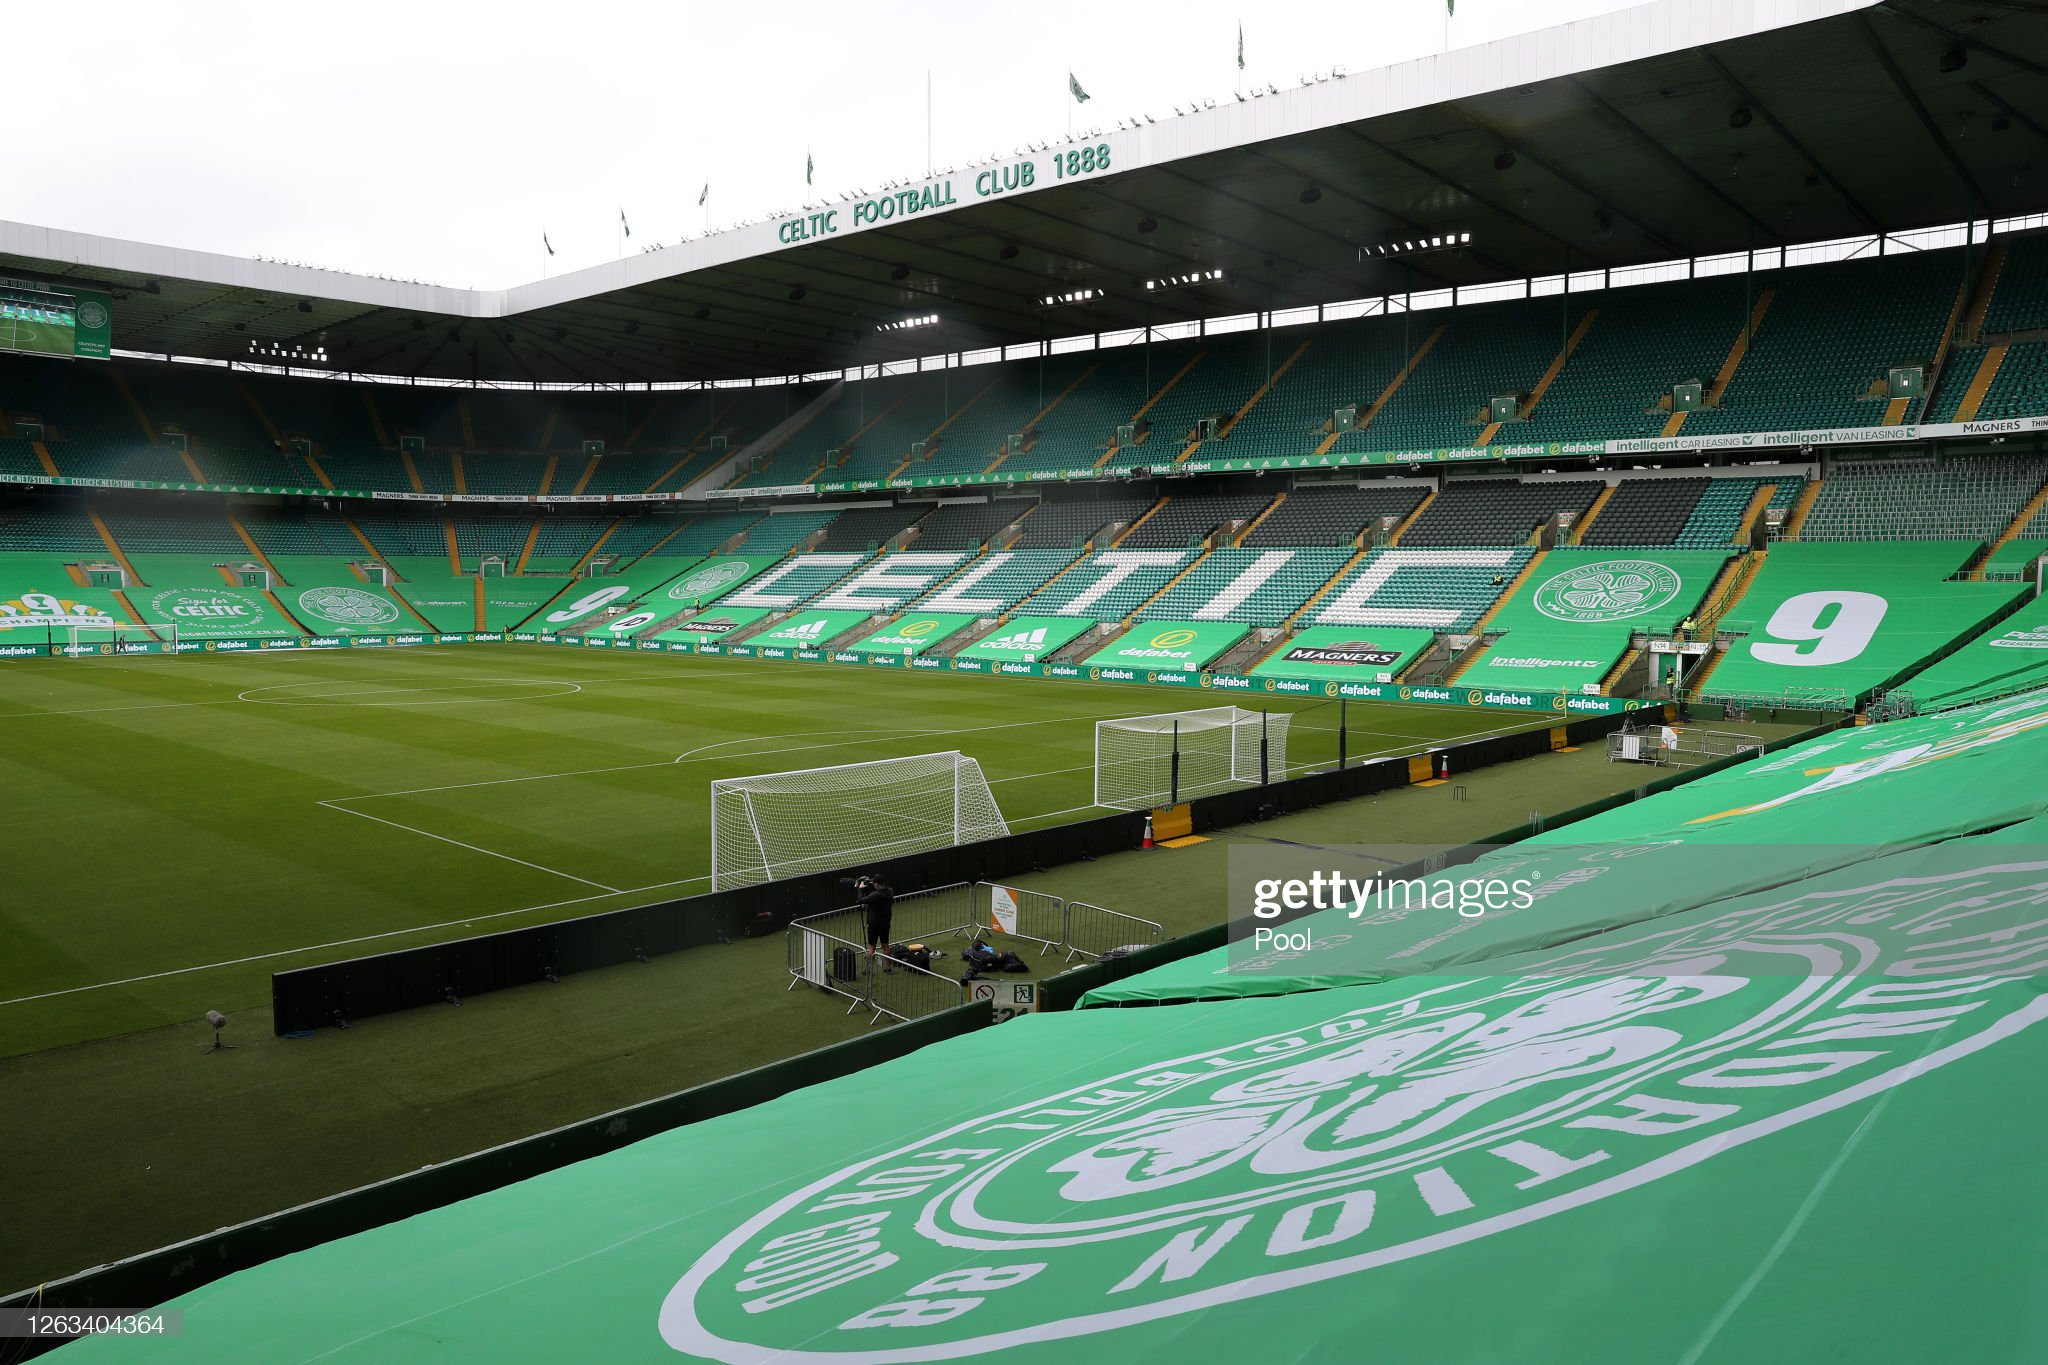 Celtic vs Ferencvaros preview, prediction and odds